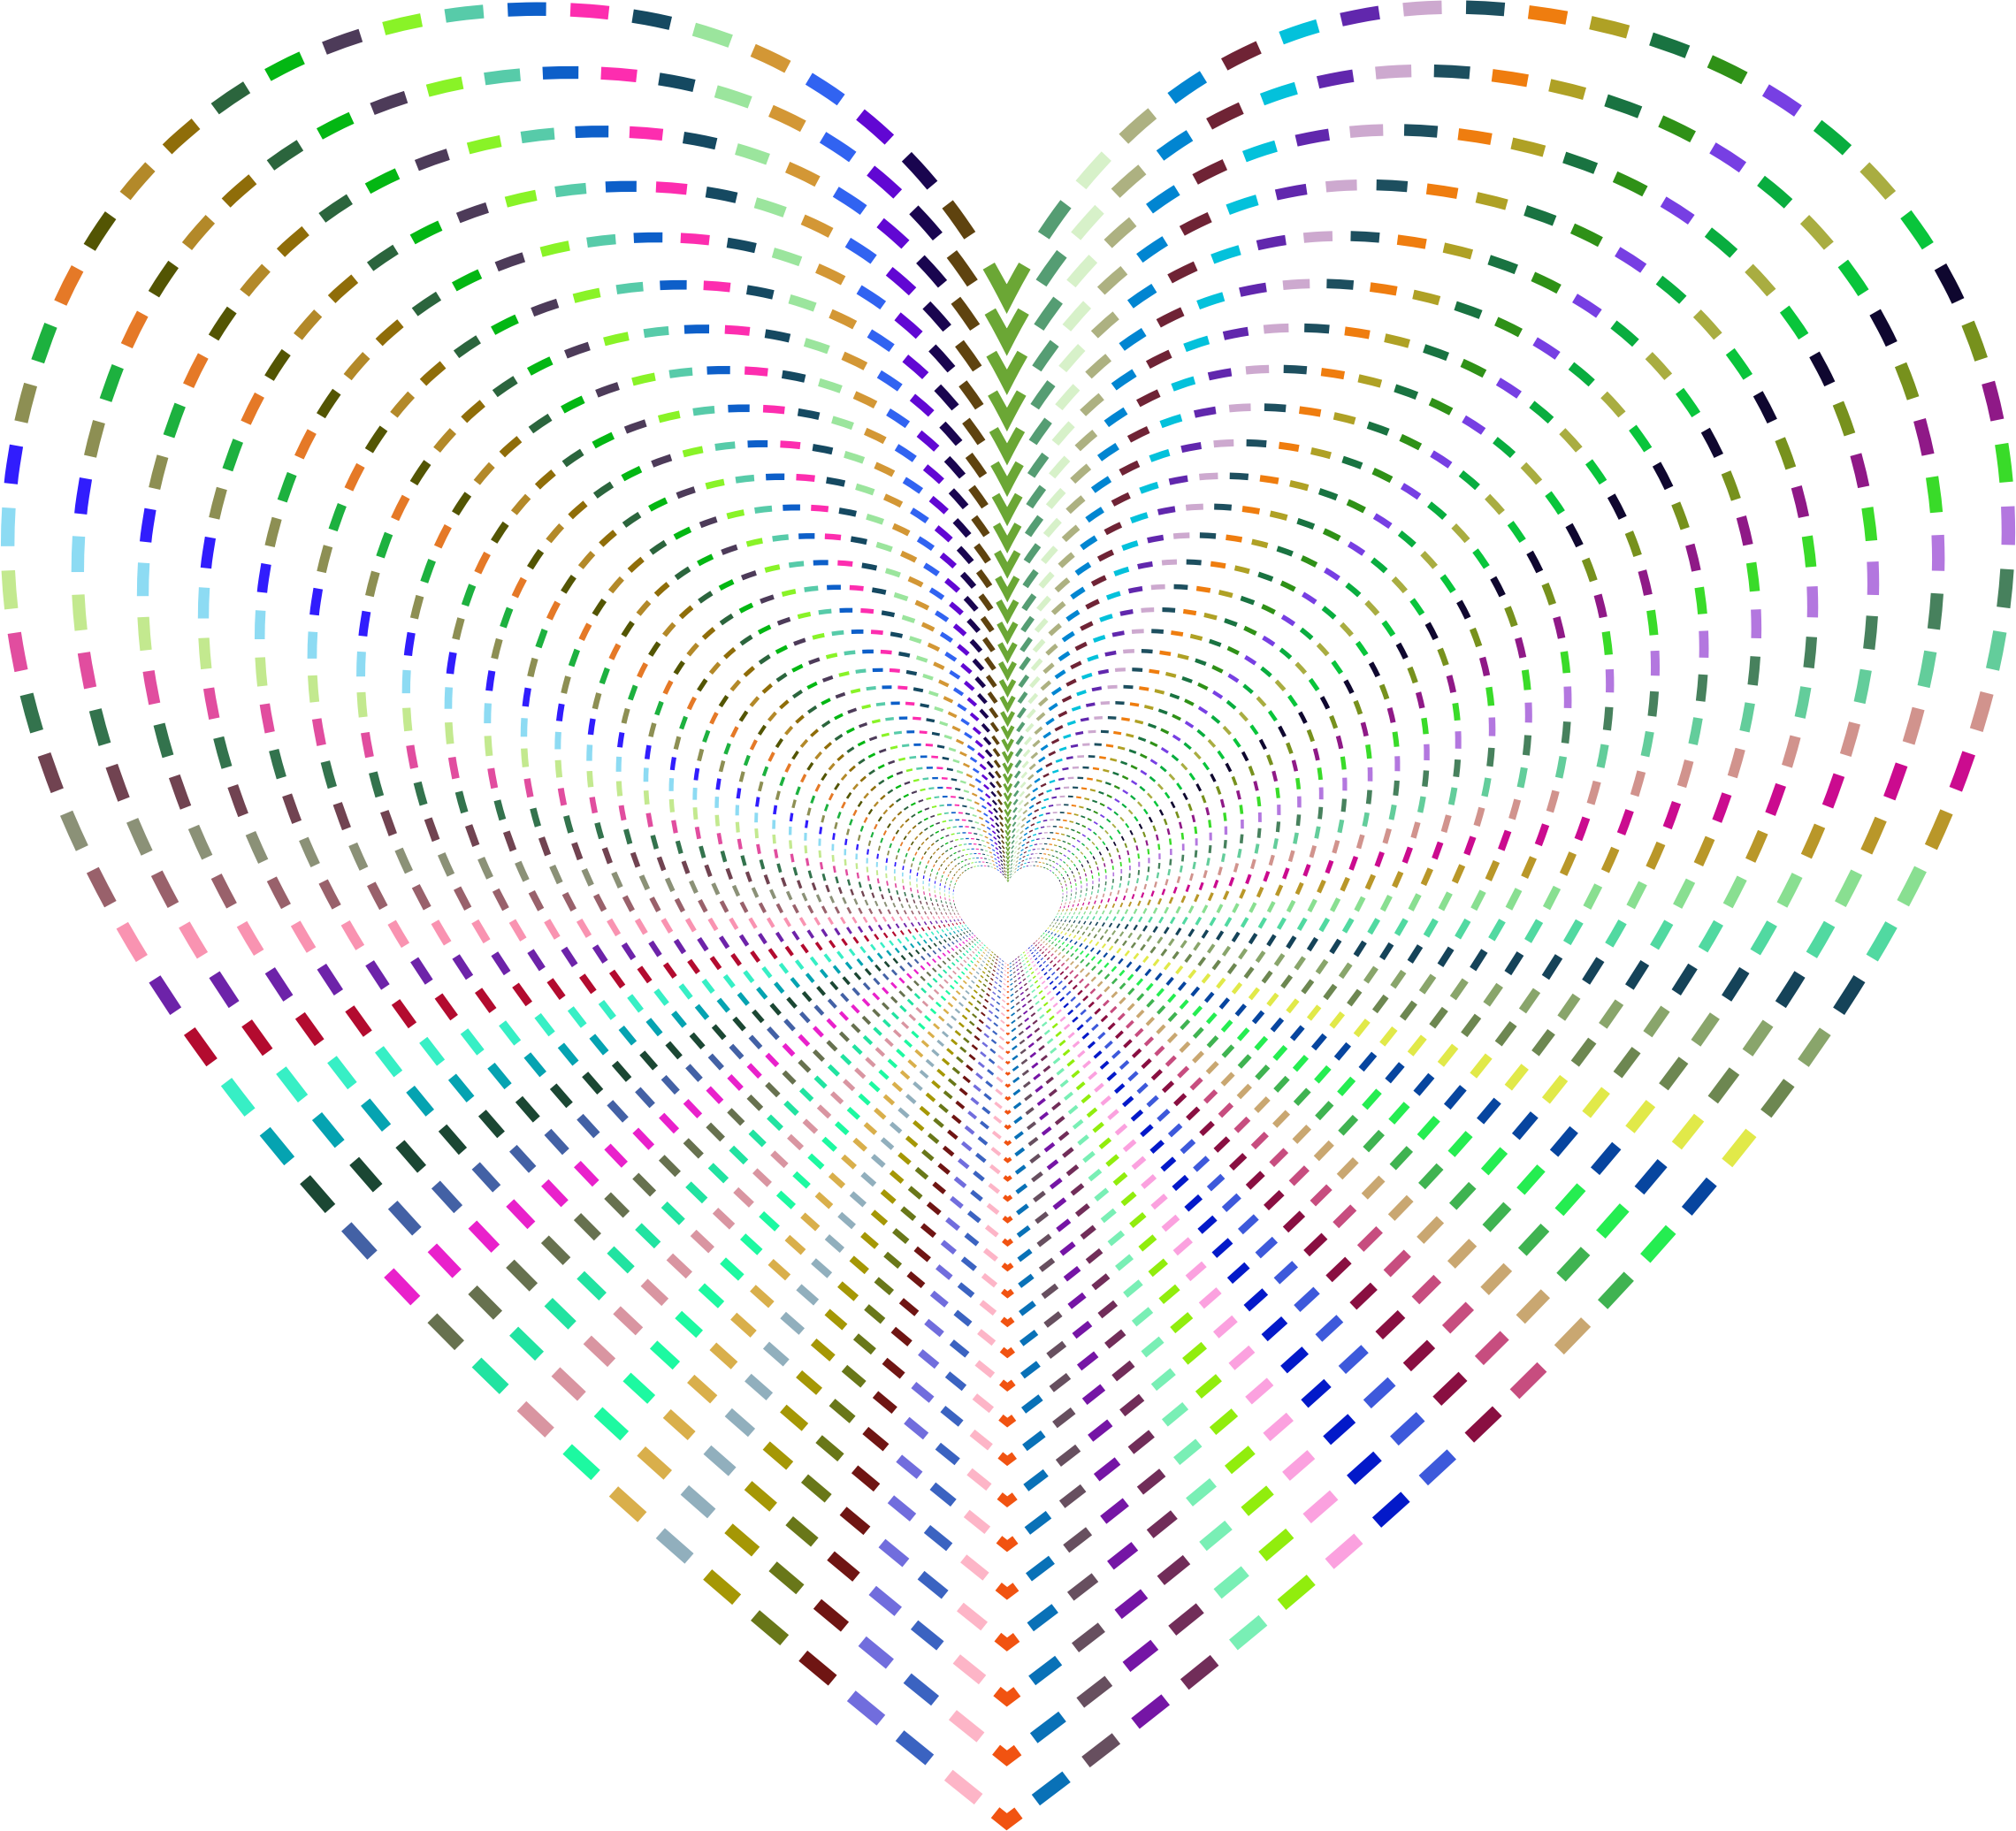 Dashed Line Art Heart Tunnel No Background by GDJ